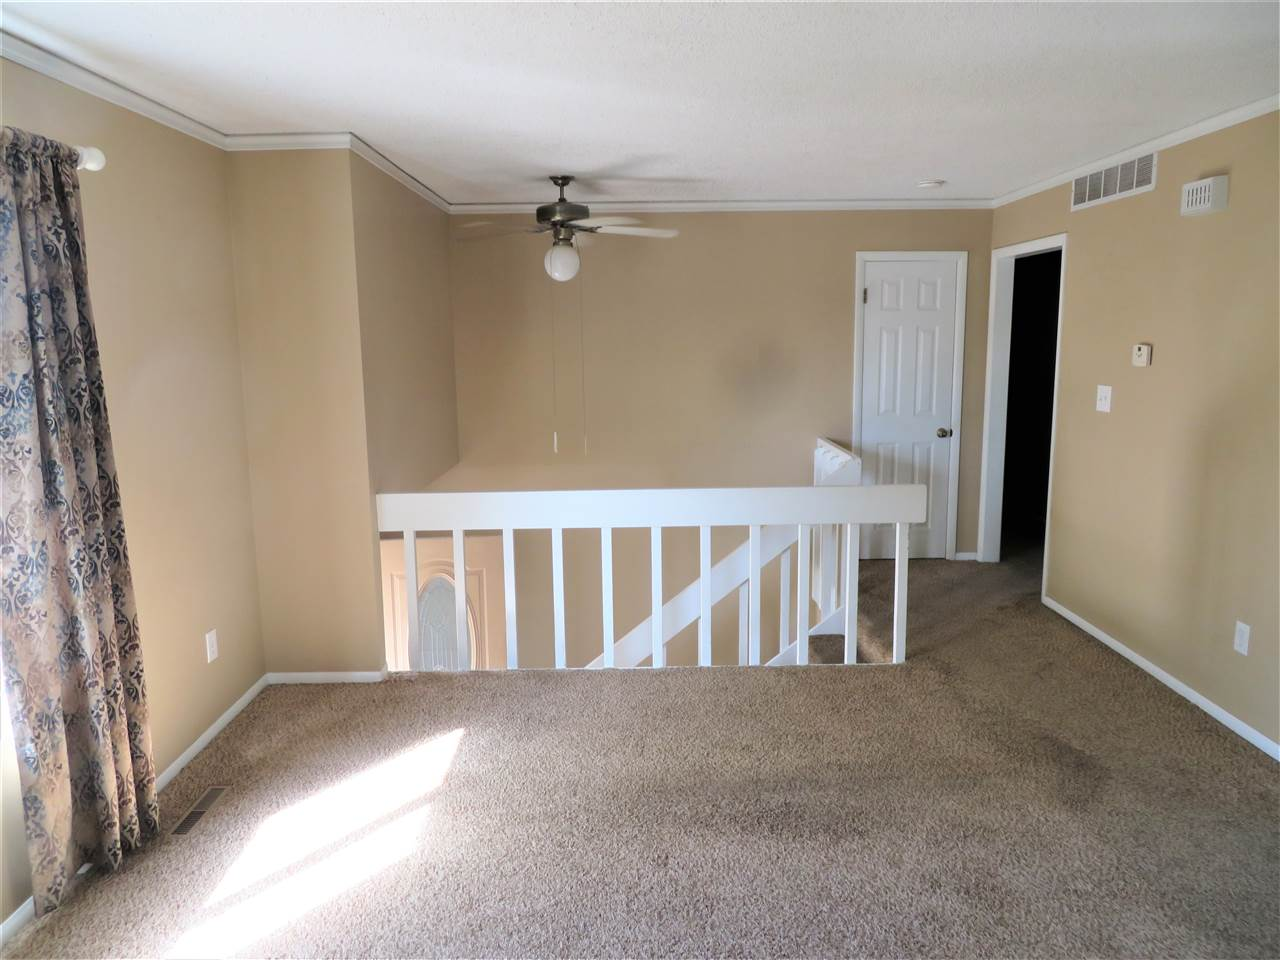 For Sale: 1118 S Meadowhaven, Derby KS